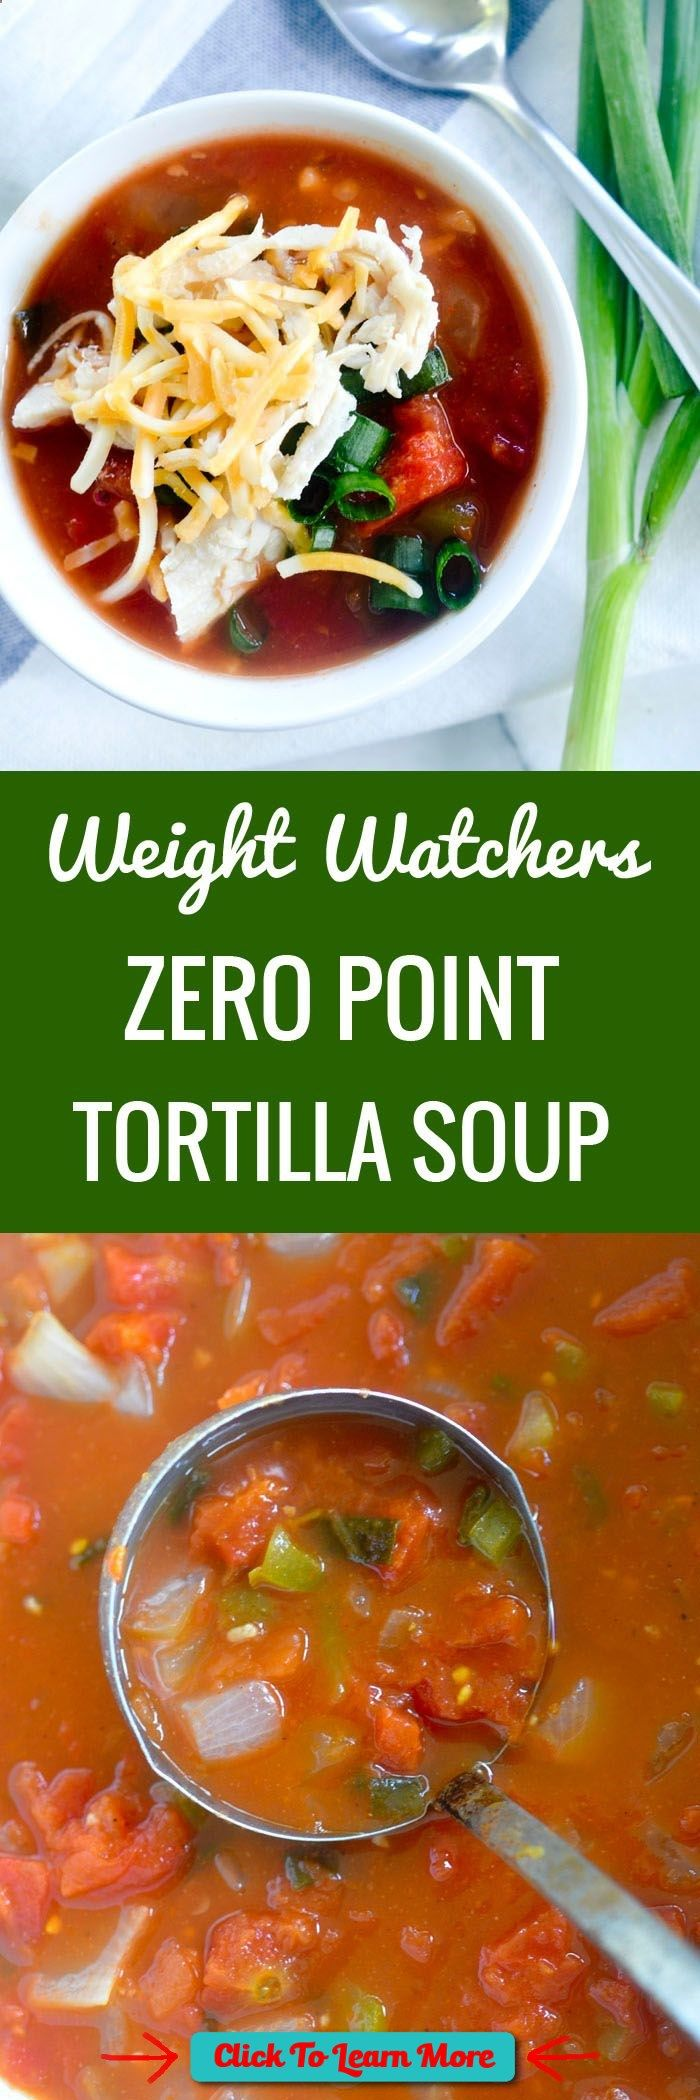 #FastestWayToLoseWeight by EATING, Click to learn more, Weight Watchers Zero Point Tortilla Soup - Recipe Diaries , #HealthyRecipes, #FitnessRecipes, #BurnFatRecipes, #WeightLossRecipes, #WeightLossDiets